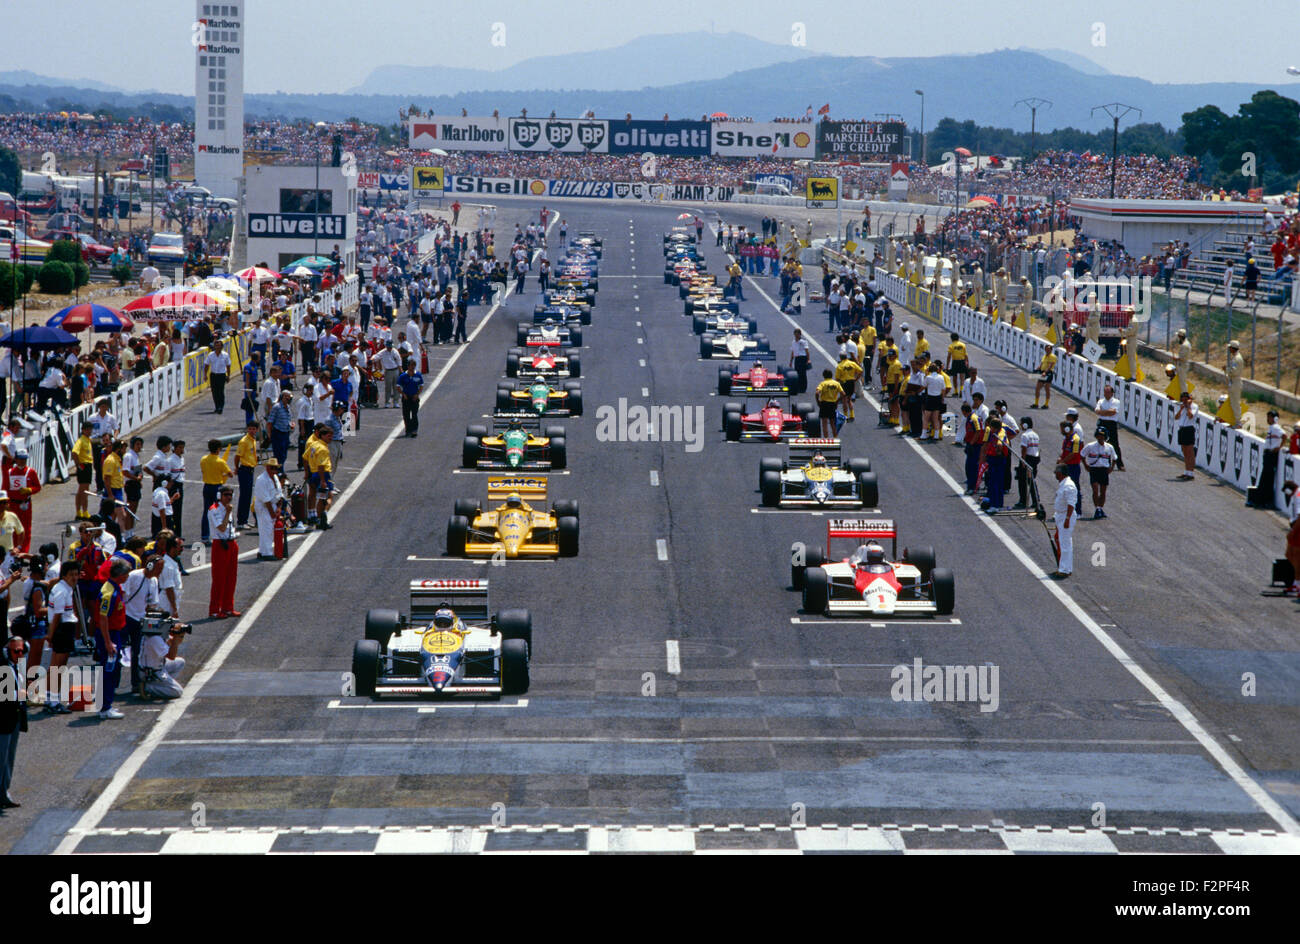 f1 cars in the grid at the start of the french gp at le castellet stock photo 87775991 alamy. Black Bedroom Furniture Sets. Home Design Ideas